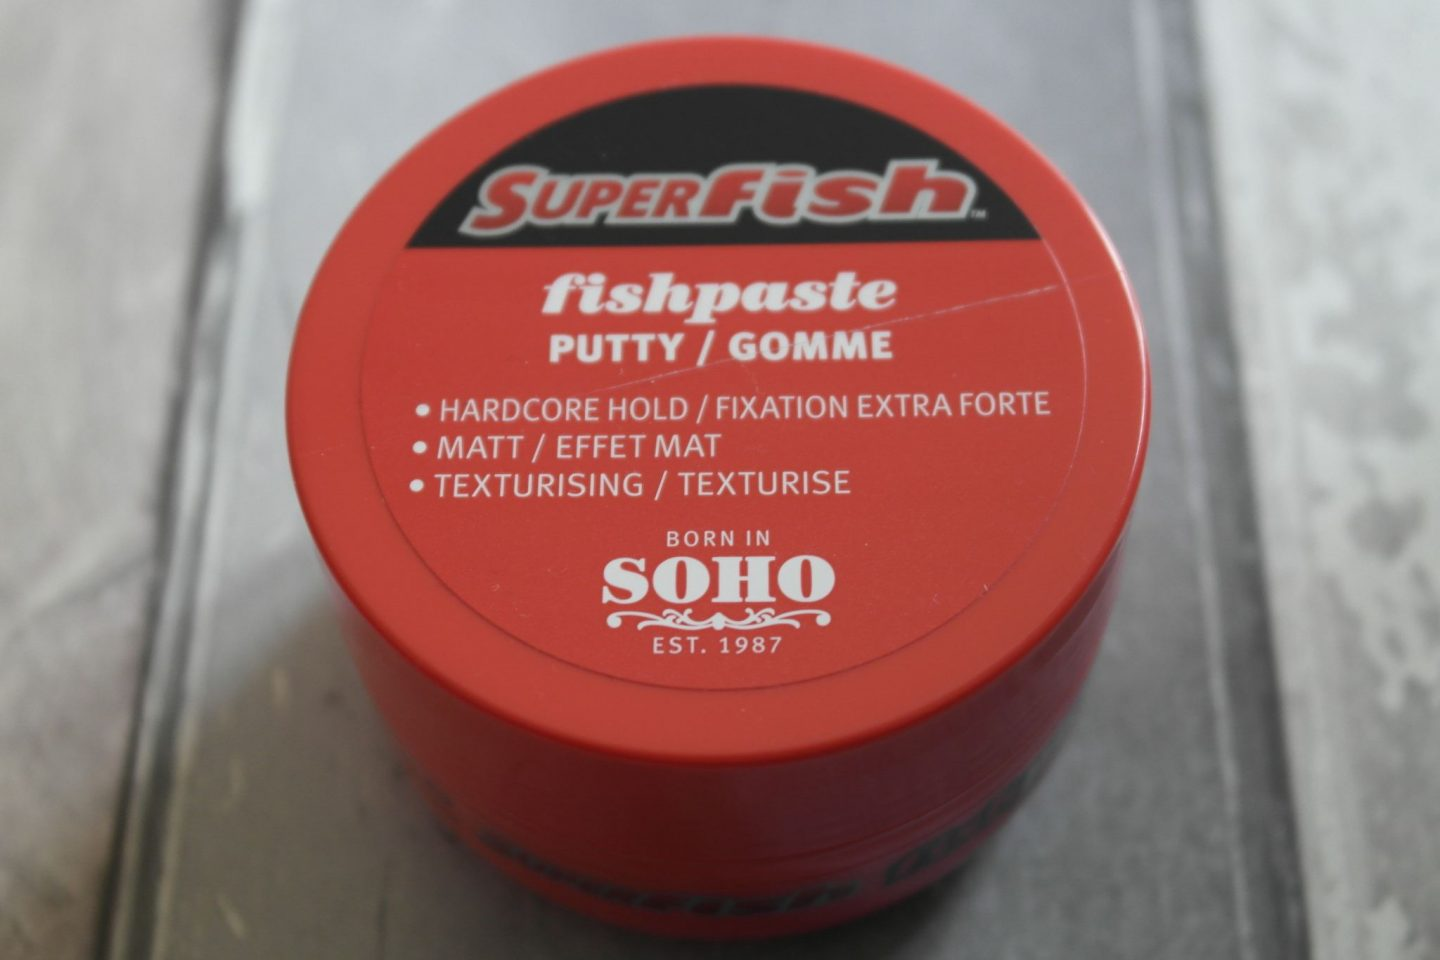 Fish SuperFish fish paste putty